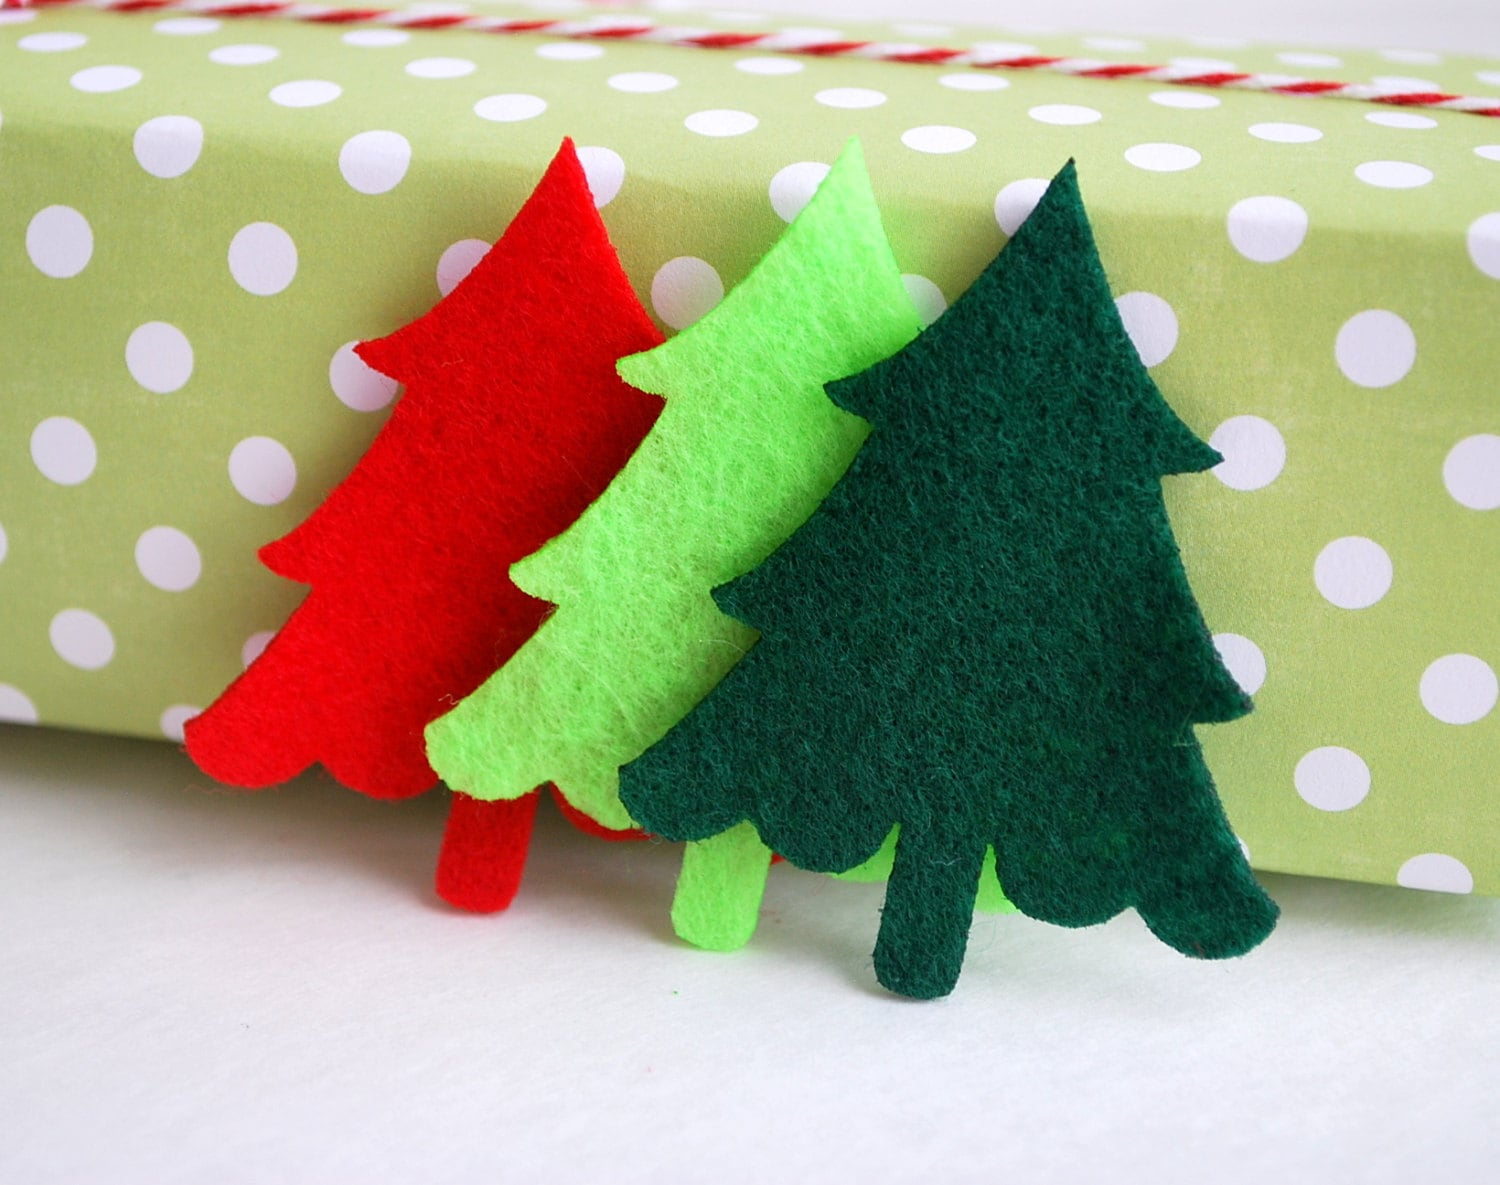 24 Felt Trees Die Cut 24 Christmas Tree Die Cut 2.5